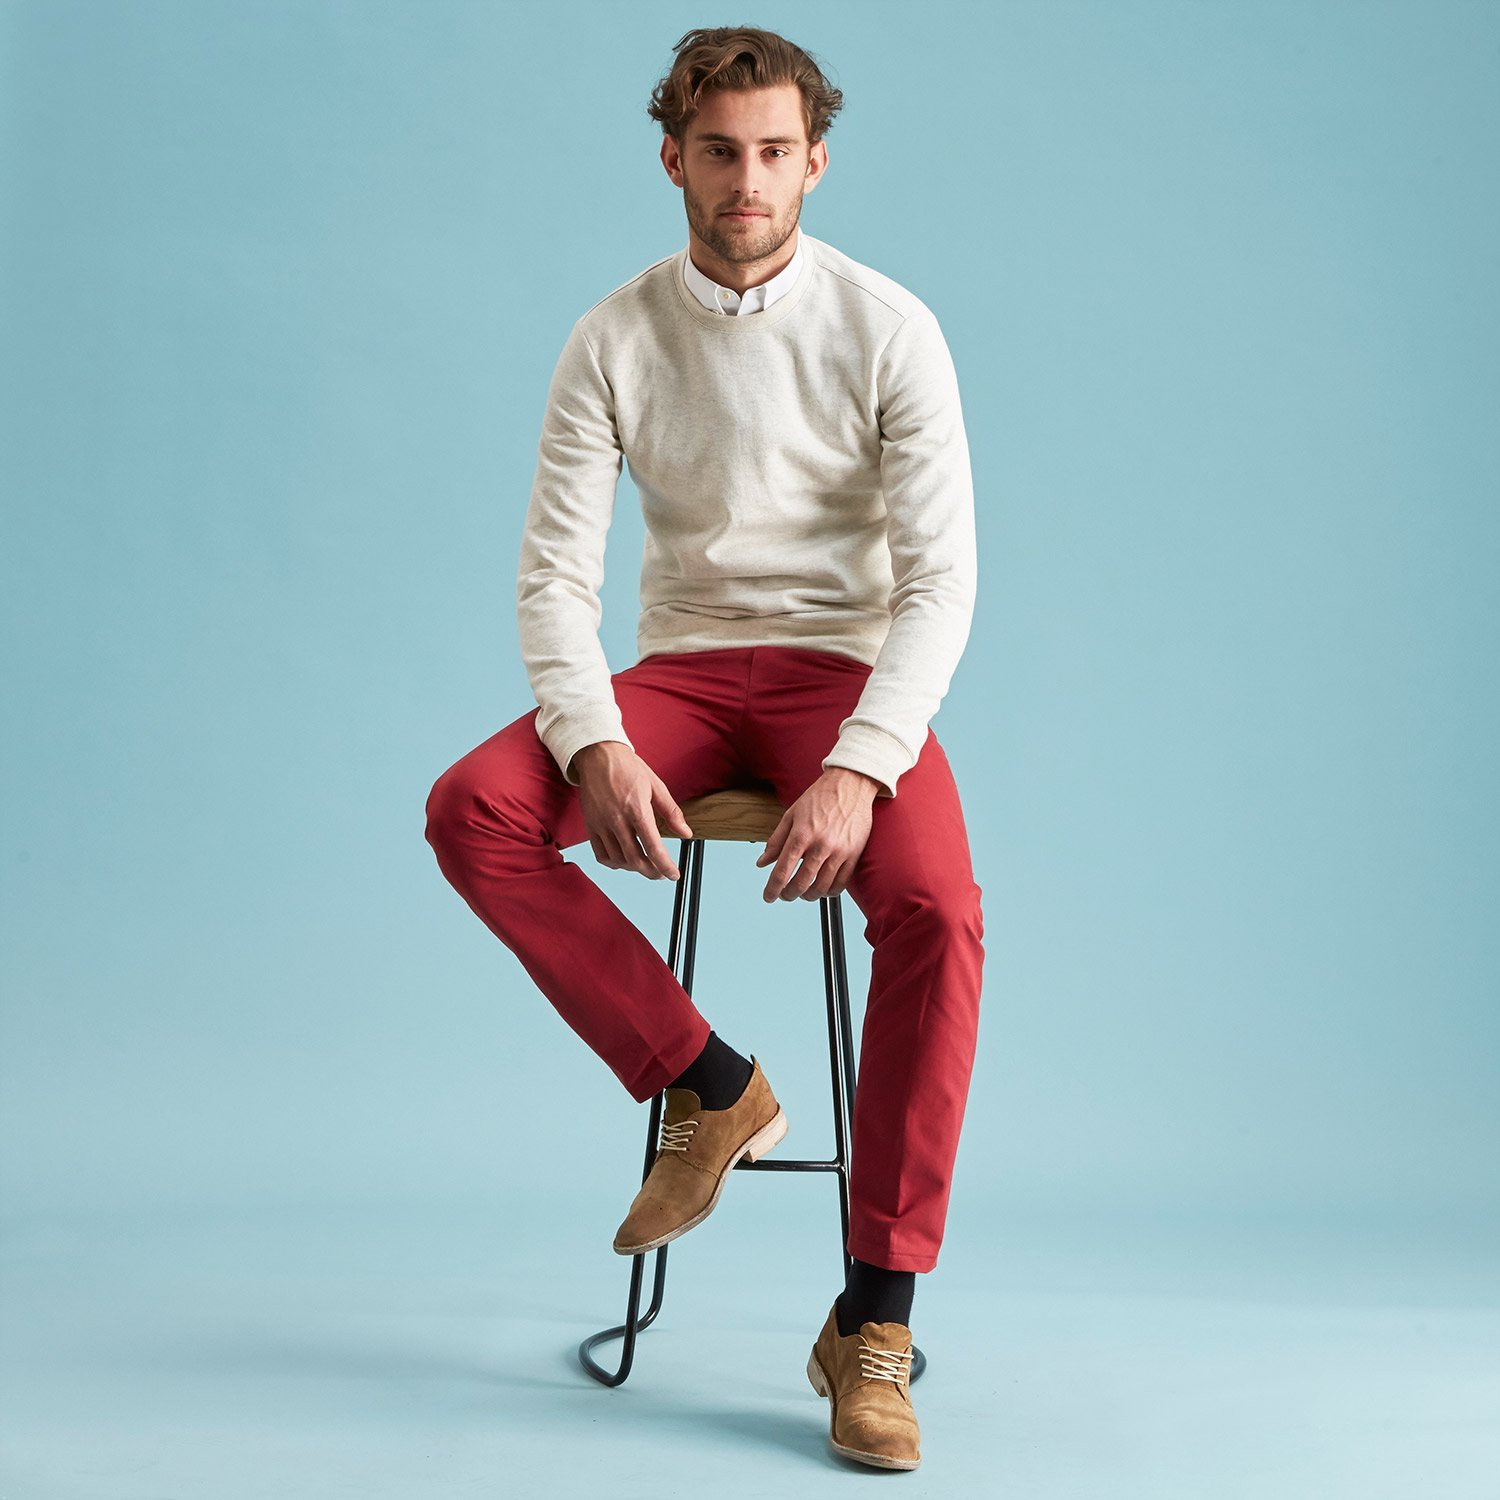 The American Khaki Maroon Todd Shelton seated